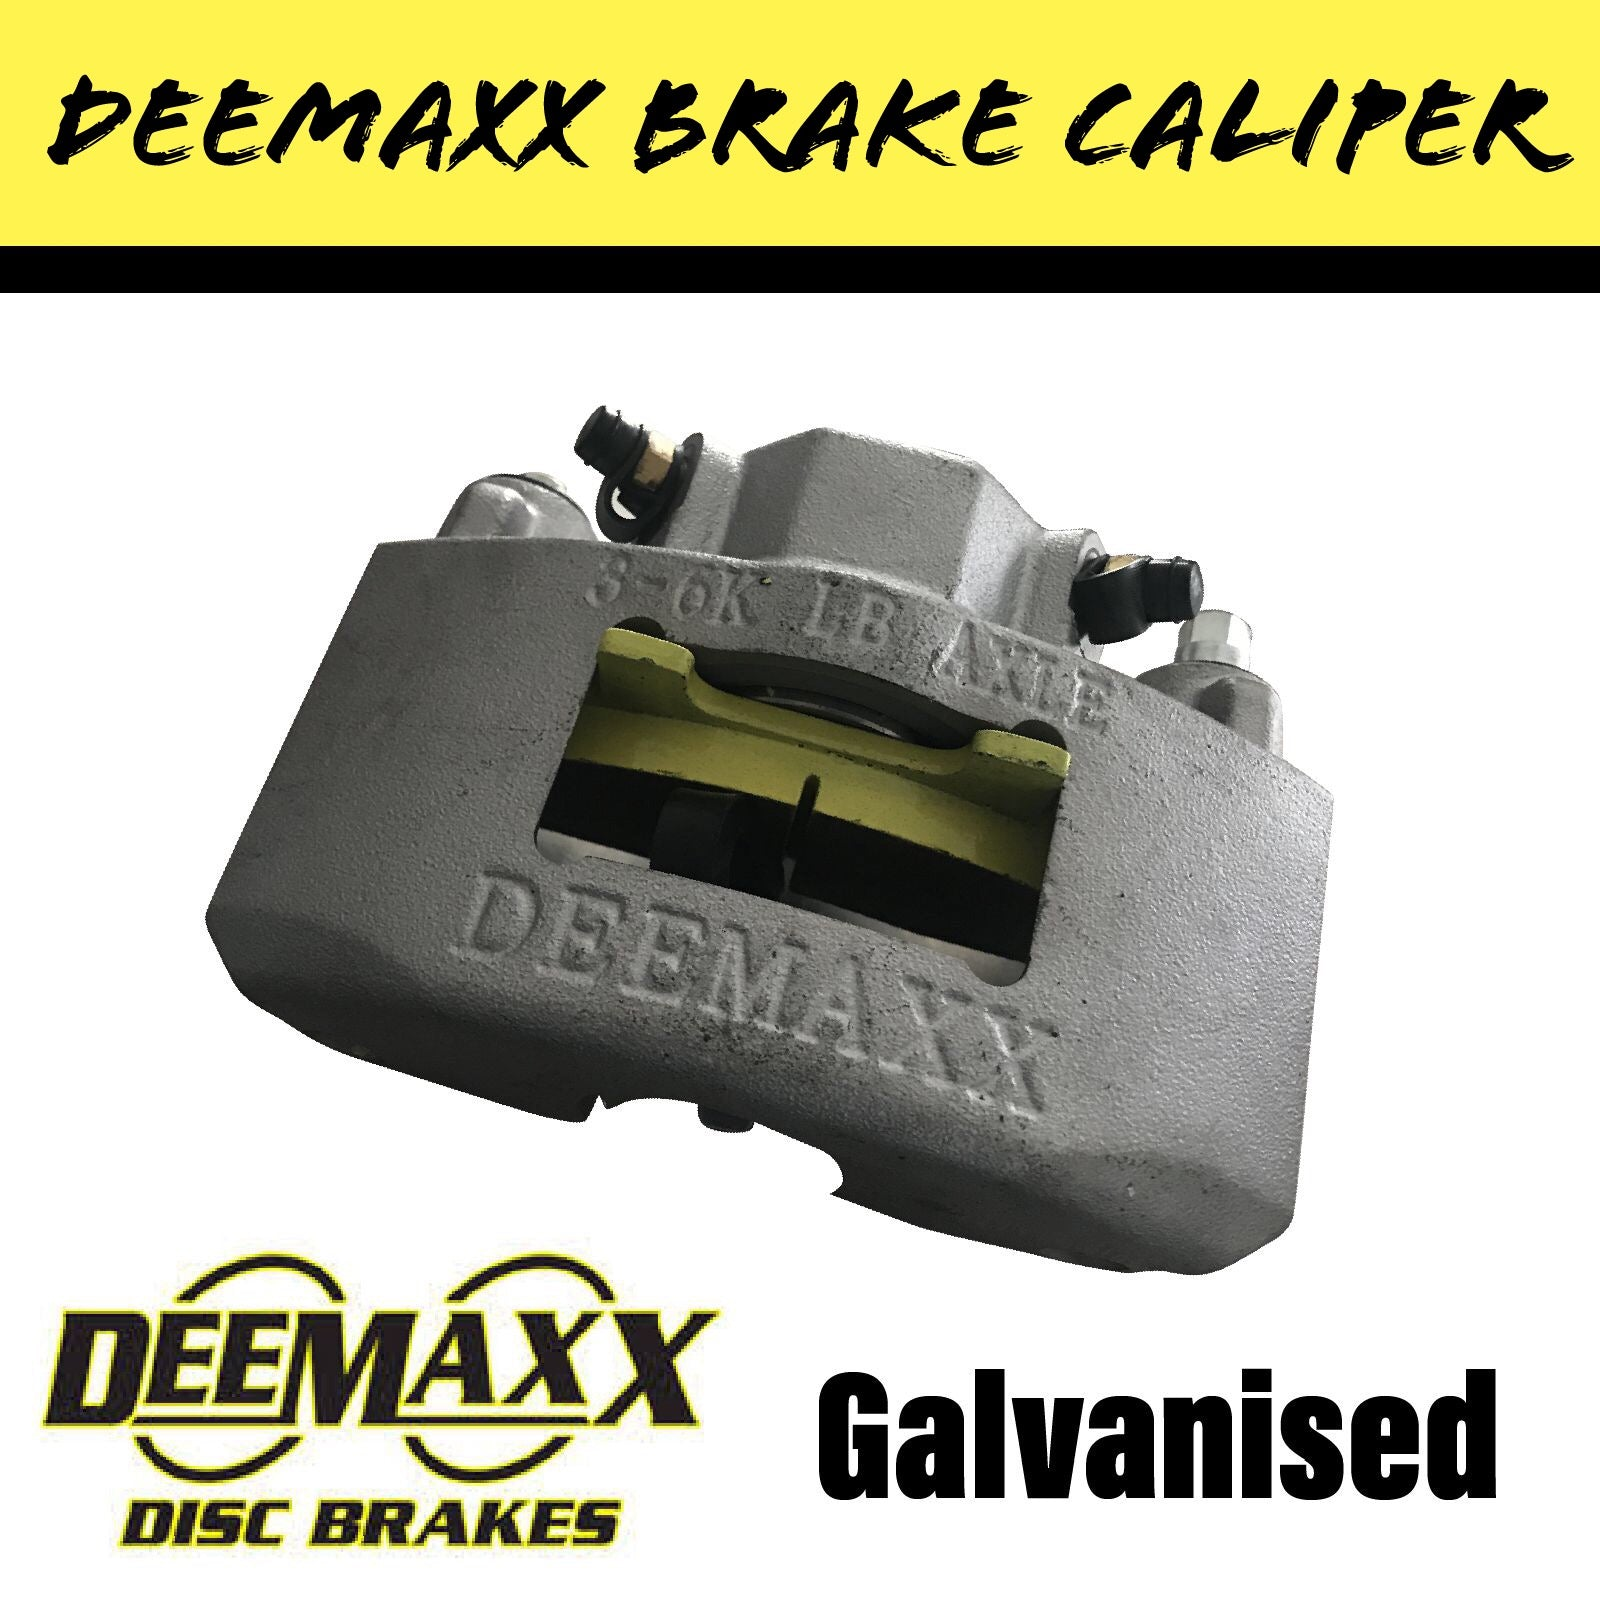 DEEMAXX/KODIAK DACROMET Hydraulic Trailer Brake Caliper